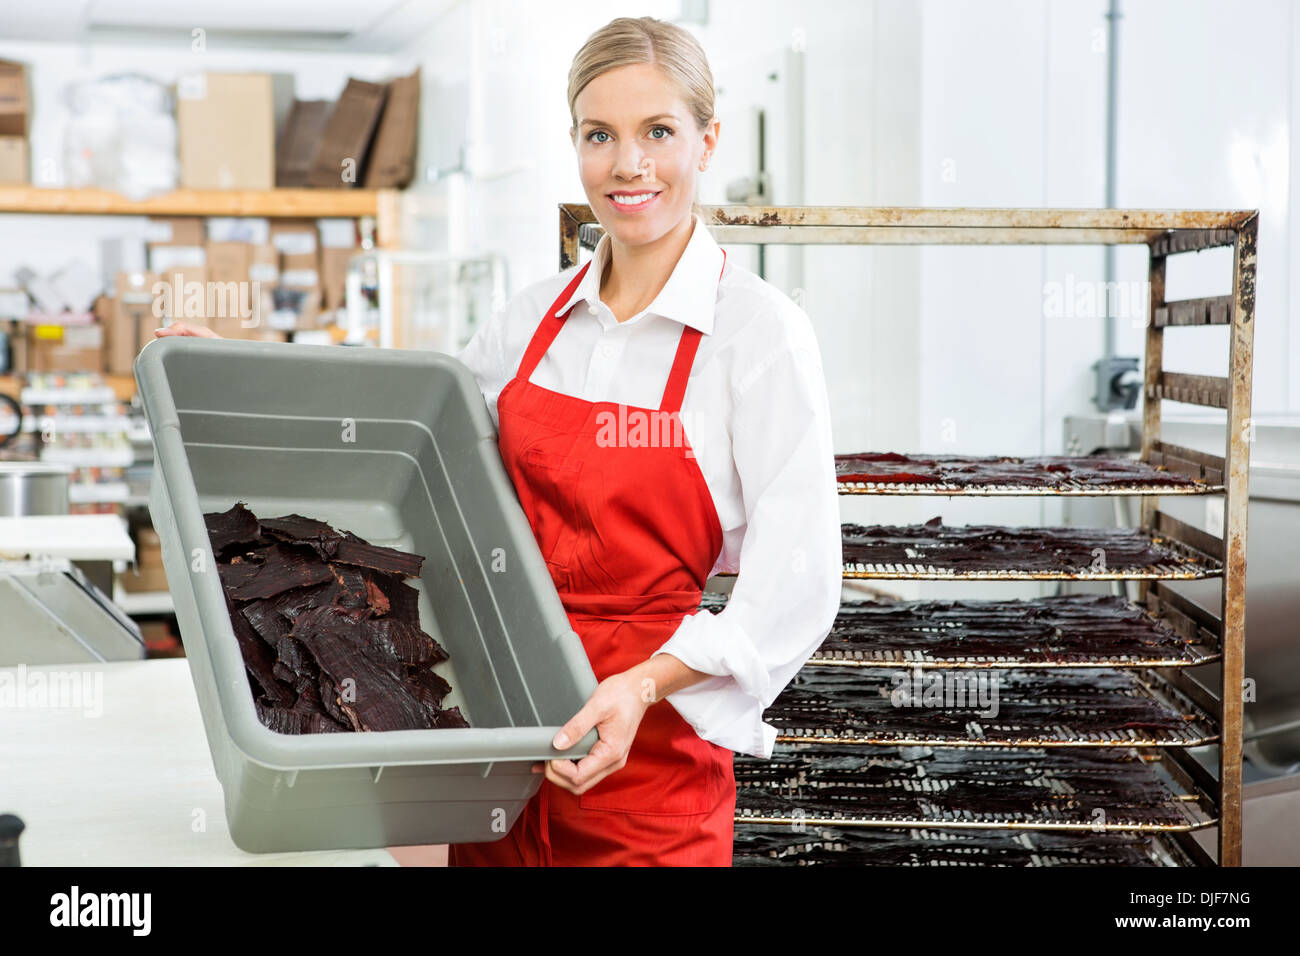 Worker Showing Beef Jerky In Basket At Shop - Stock Image